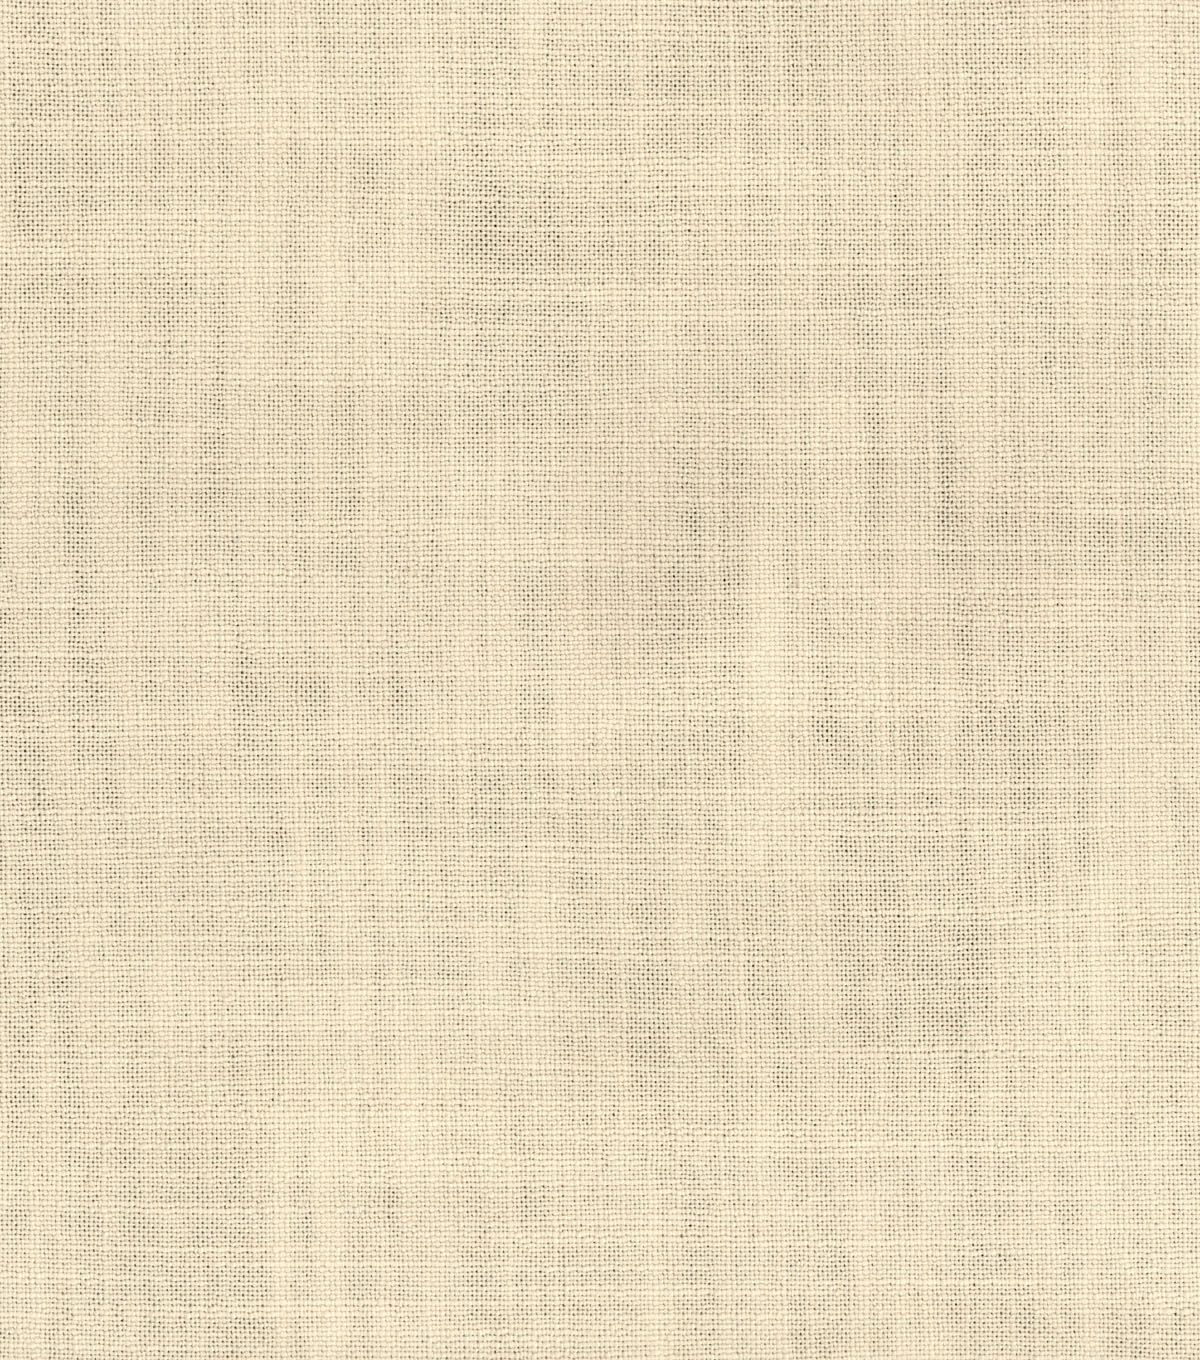 Home Decor Solid Fabric PKL Gramercy Solid Beach JOANN